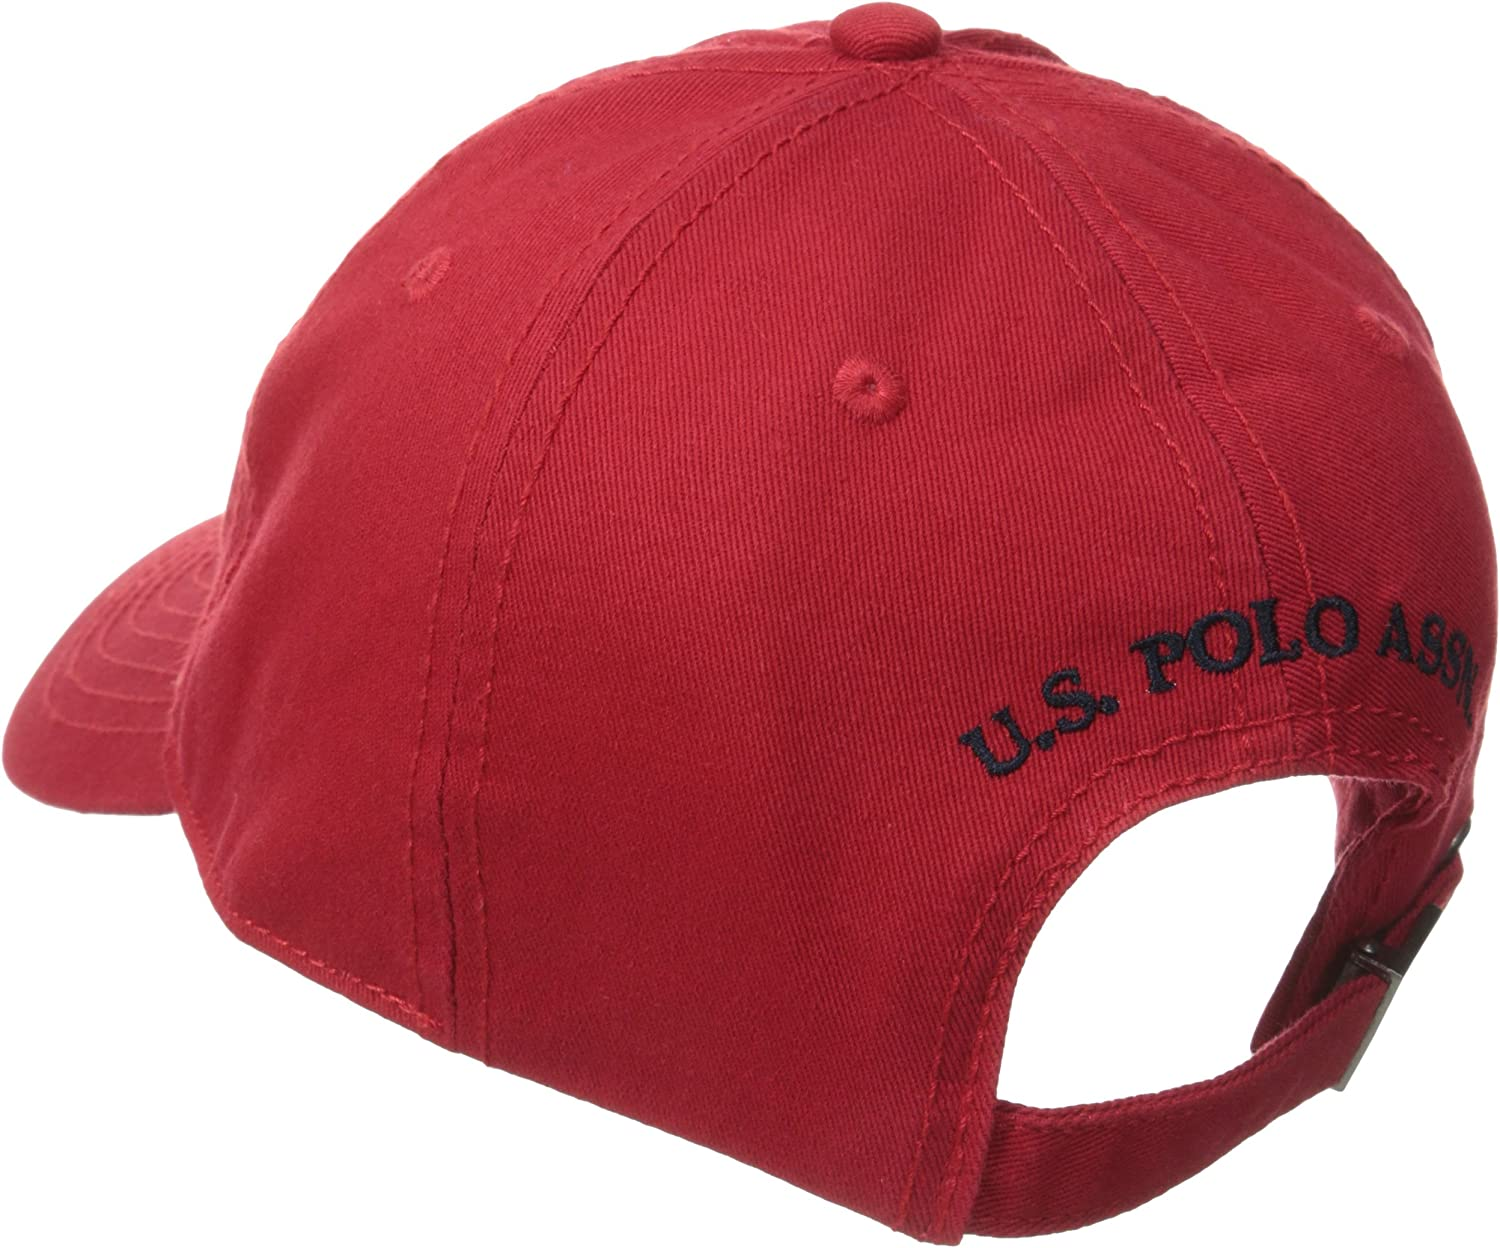 U.S. Polo Assn. Mens Small Solid Horse Adjustable Cap, Red, One ...